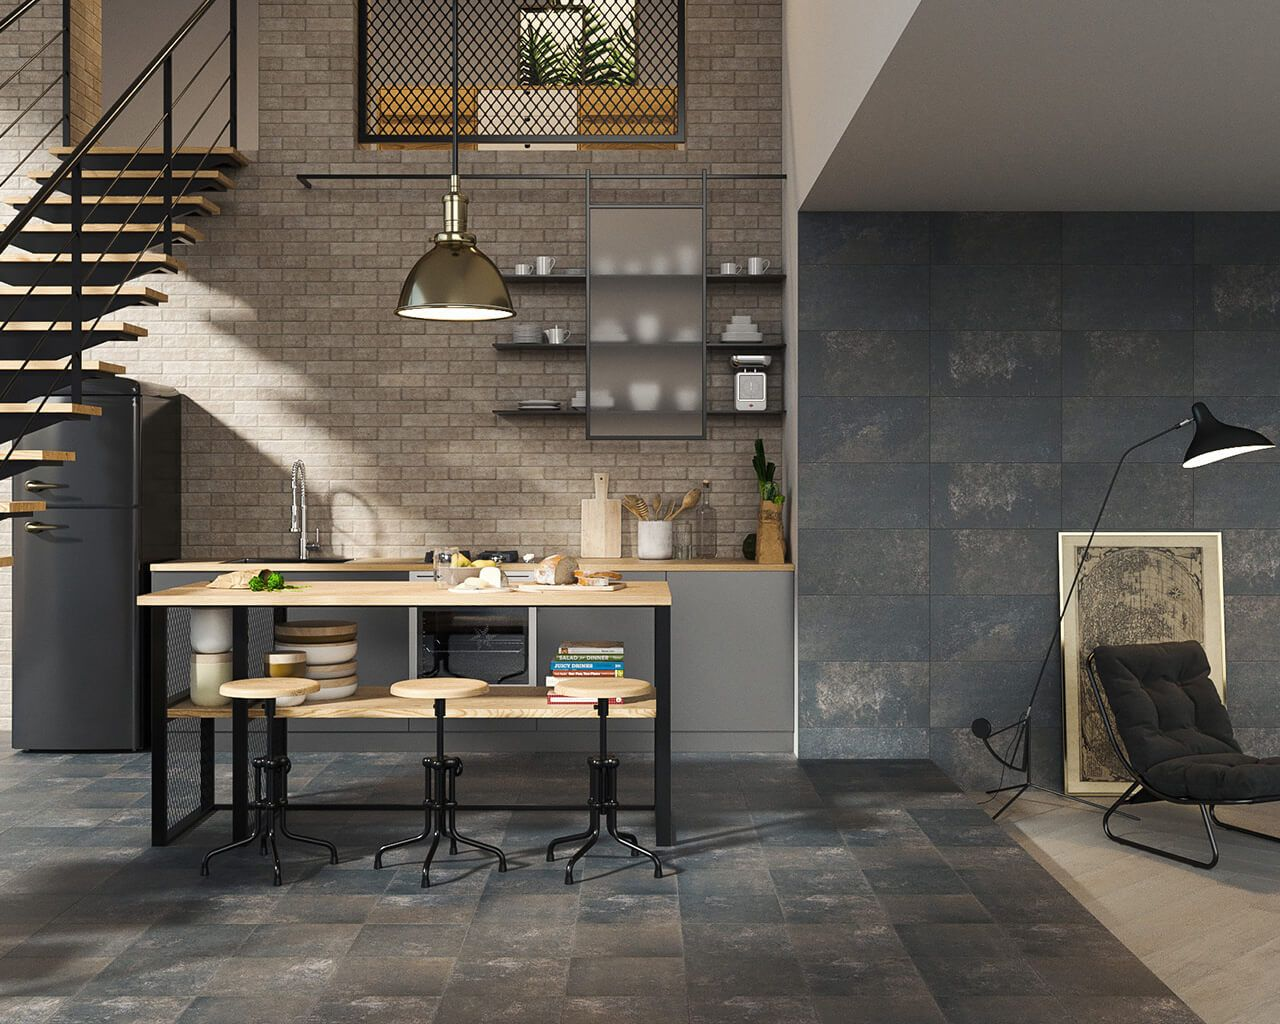 Marvelous Living Room With A Kitchenette In The Industrial Style Download Free Architecture Designs Embacsunscenecom